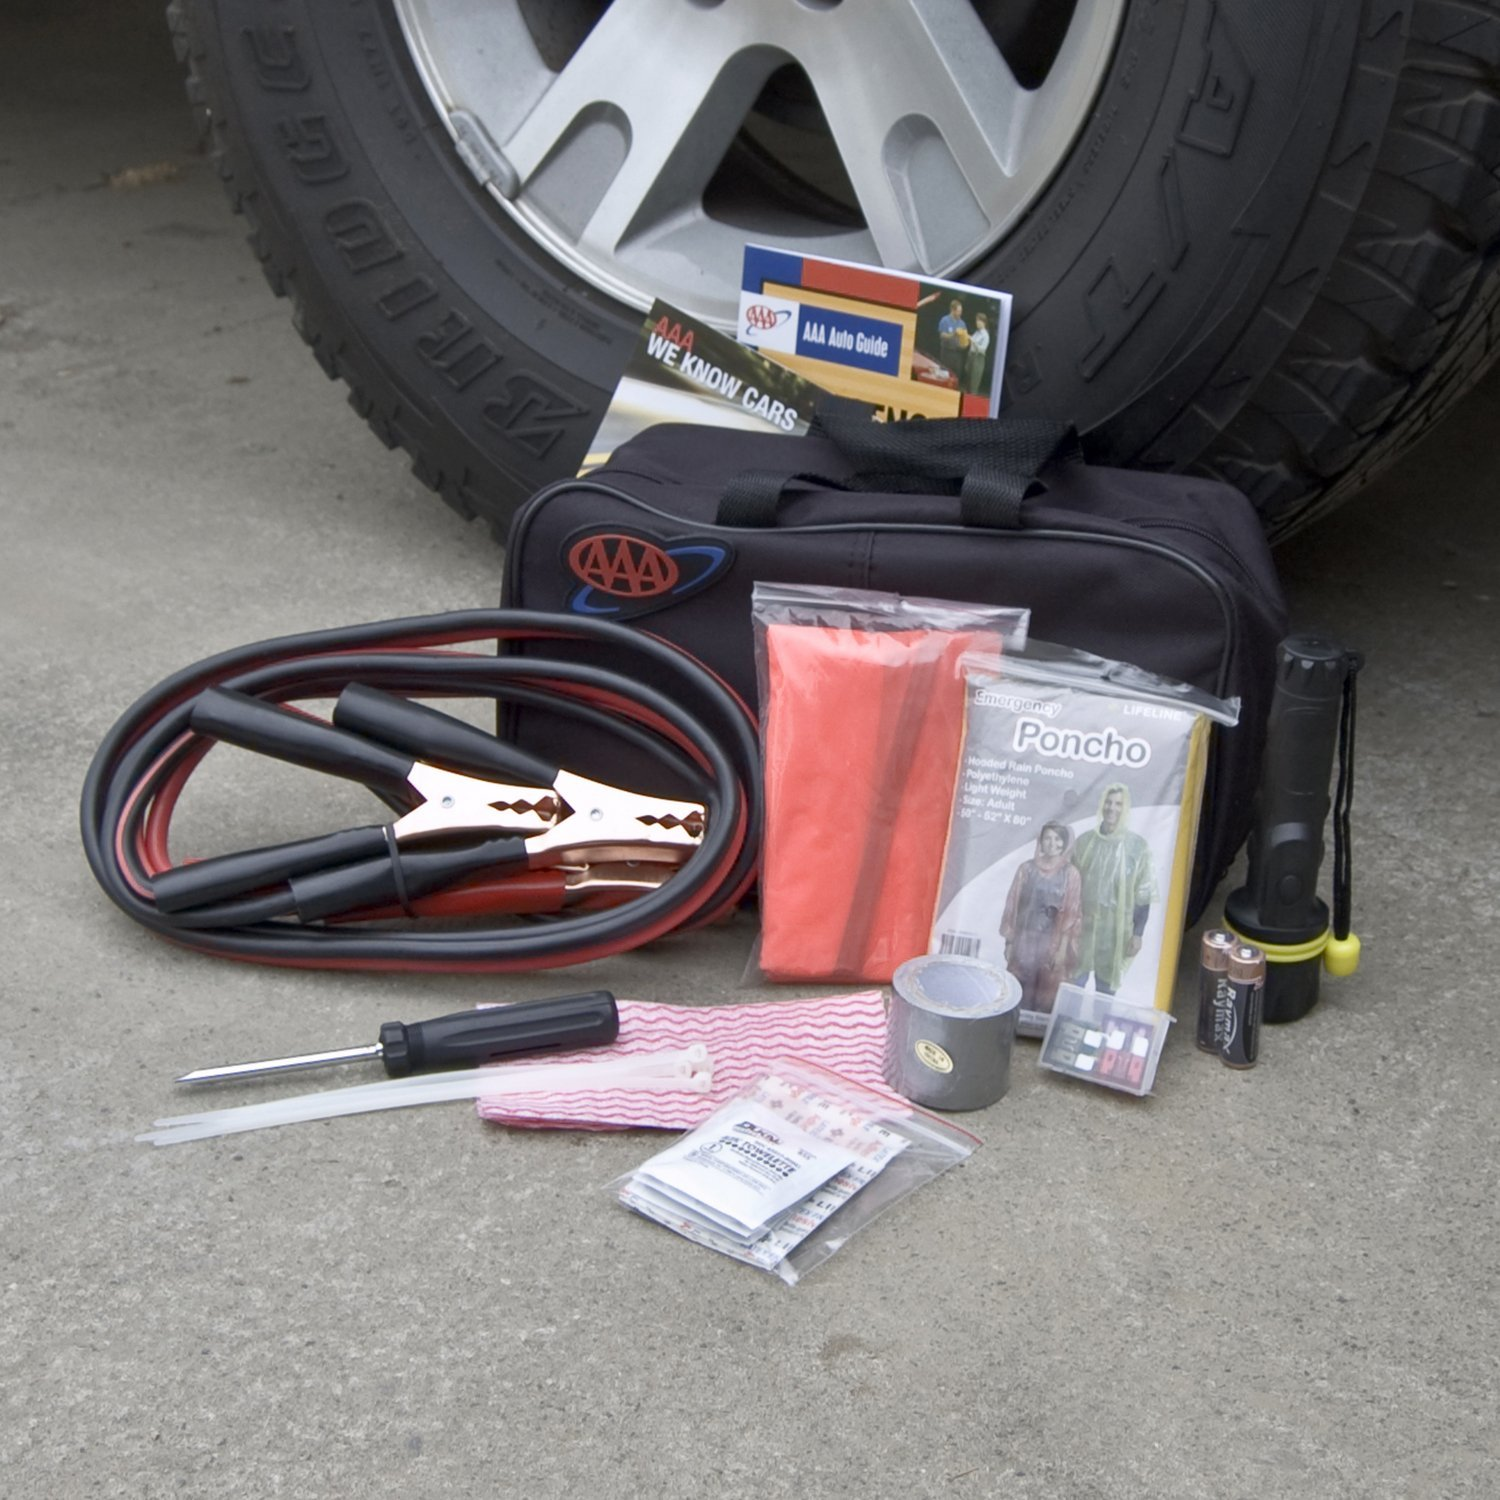 42 Piece AAA Emergency Road Kit